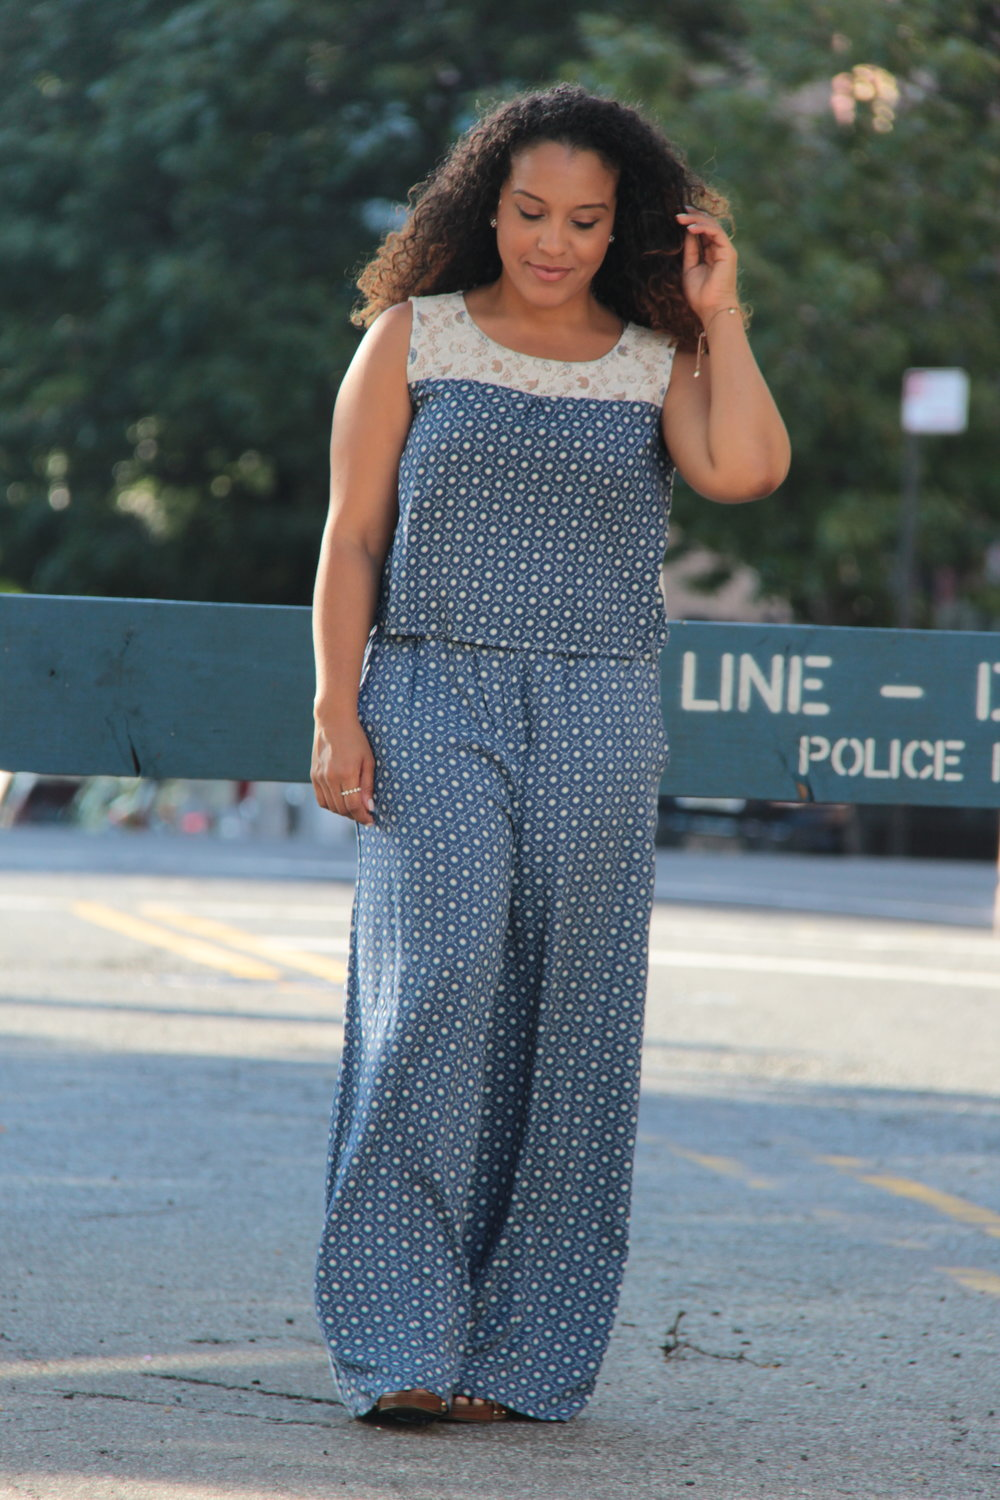 Target-Two-Piece-Outfit_7292.jpg